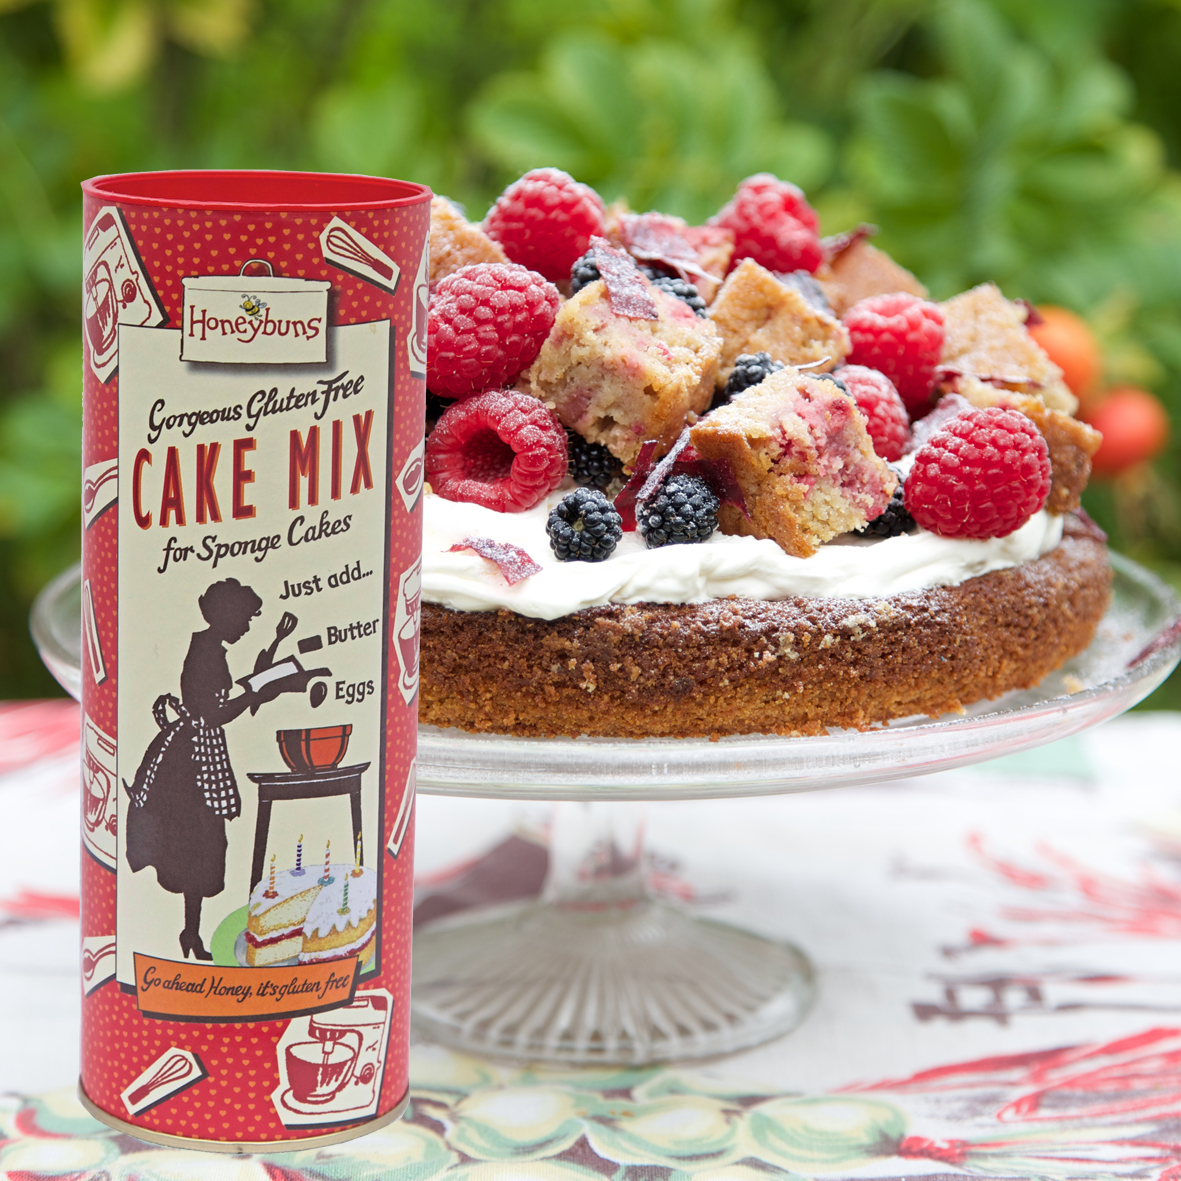 Gluten free cake mix tube, with sponge cake